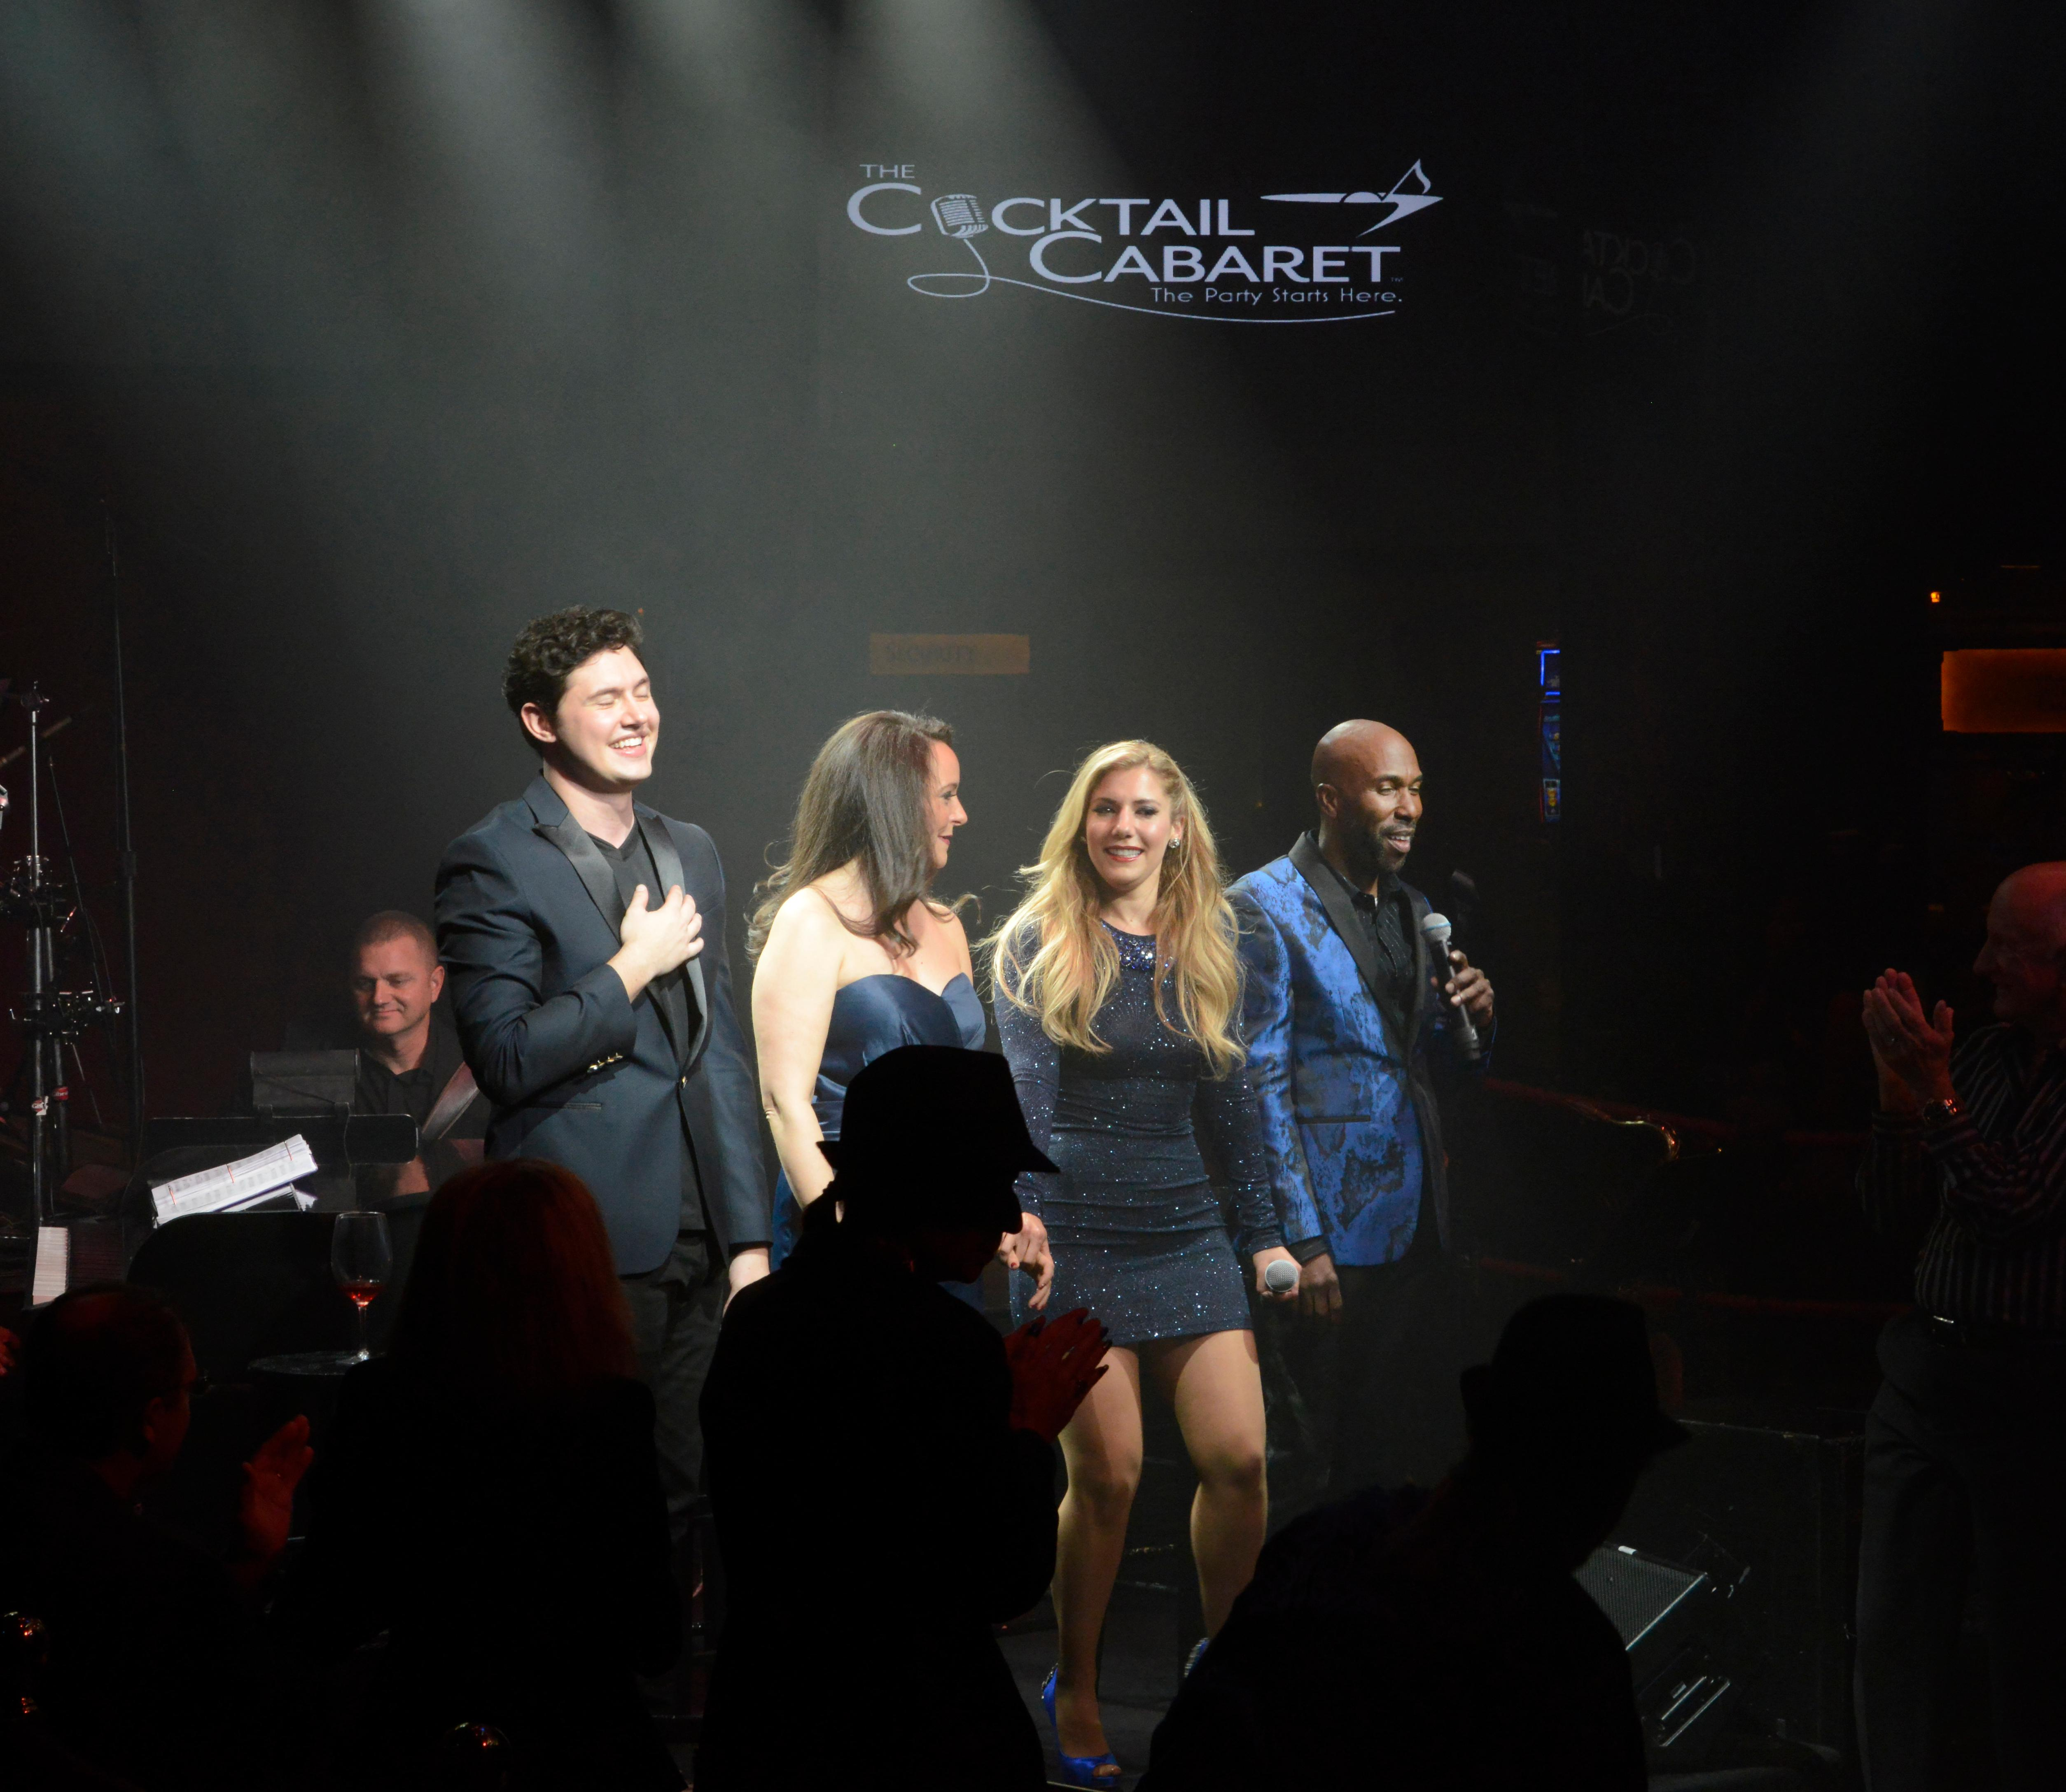 "Opening night of the musical review ""The Cocktail Cabaret"" at Cleopatra's Barge in Caesars Palace Hotel & Casino. The cast (l-r) Daniel Emmet, Niki Scalera, Maren Wade and  Eric Jordan Young. Thursday, November 30, 2017. CREDIT: Glenn Pinkerton/Las Vegas News Bureau"